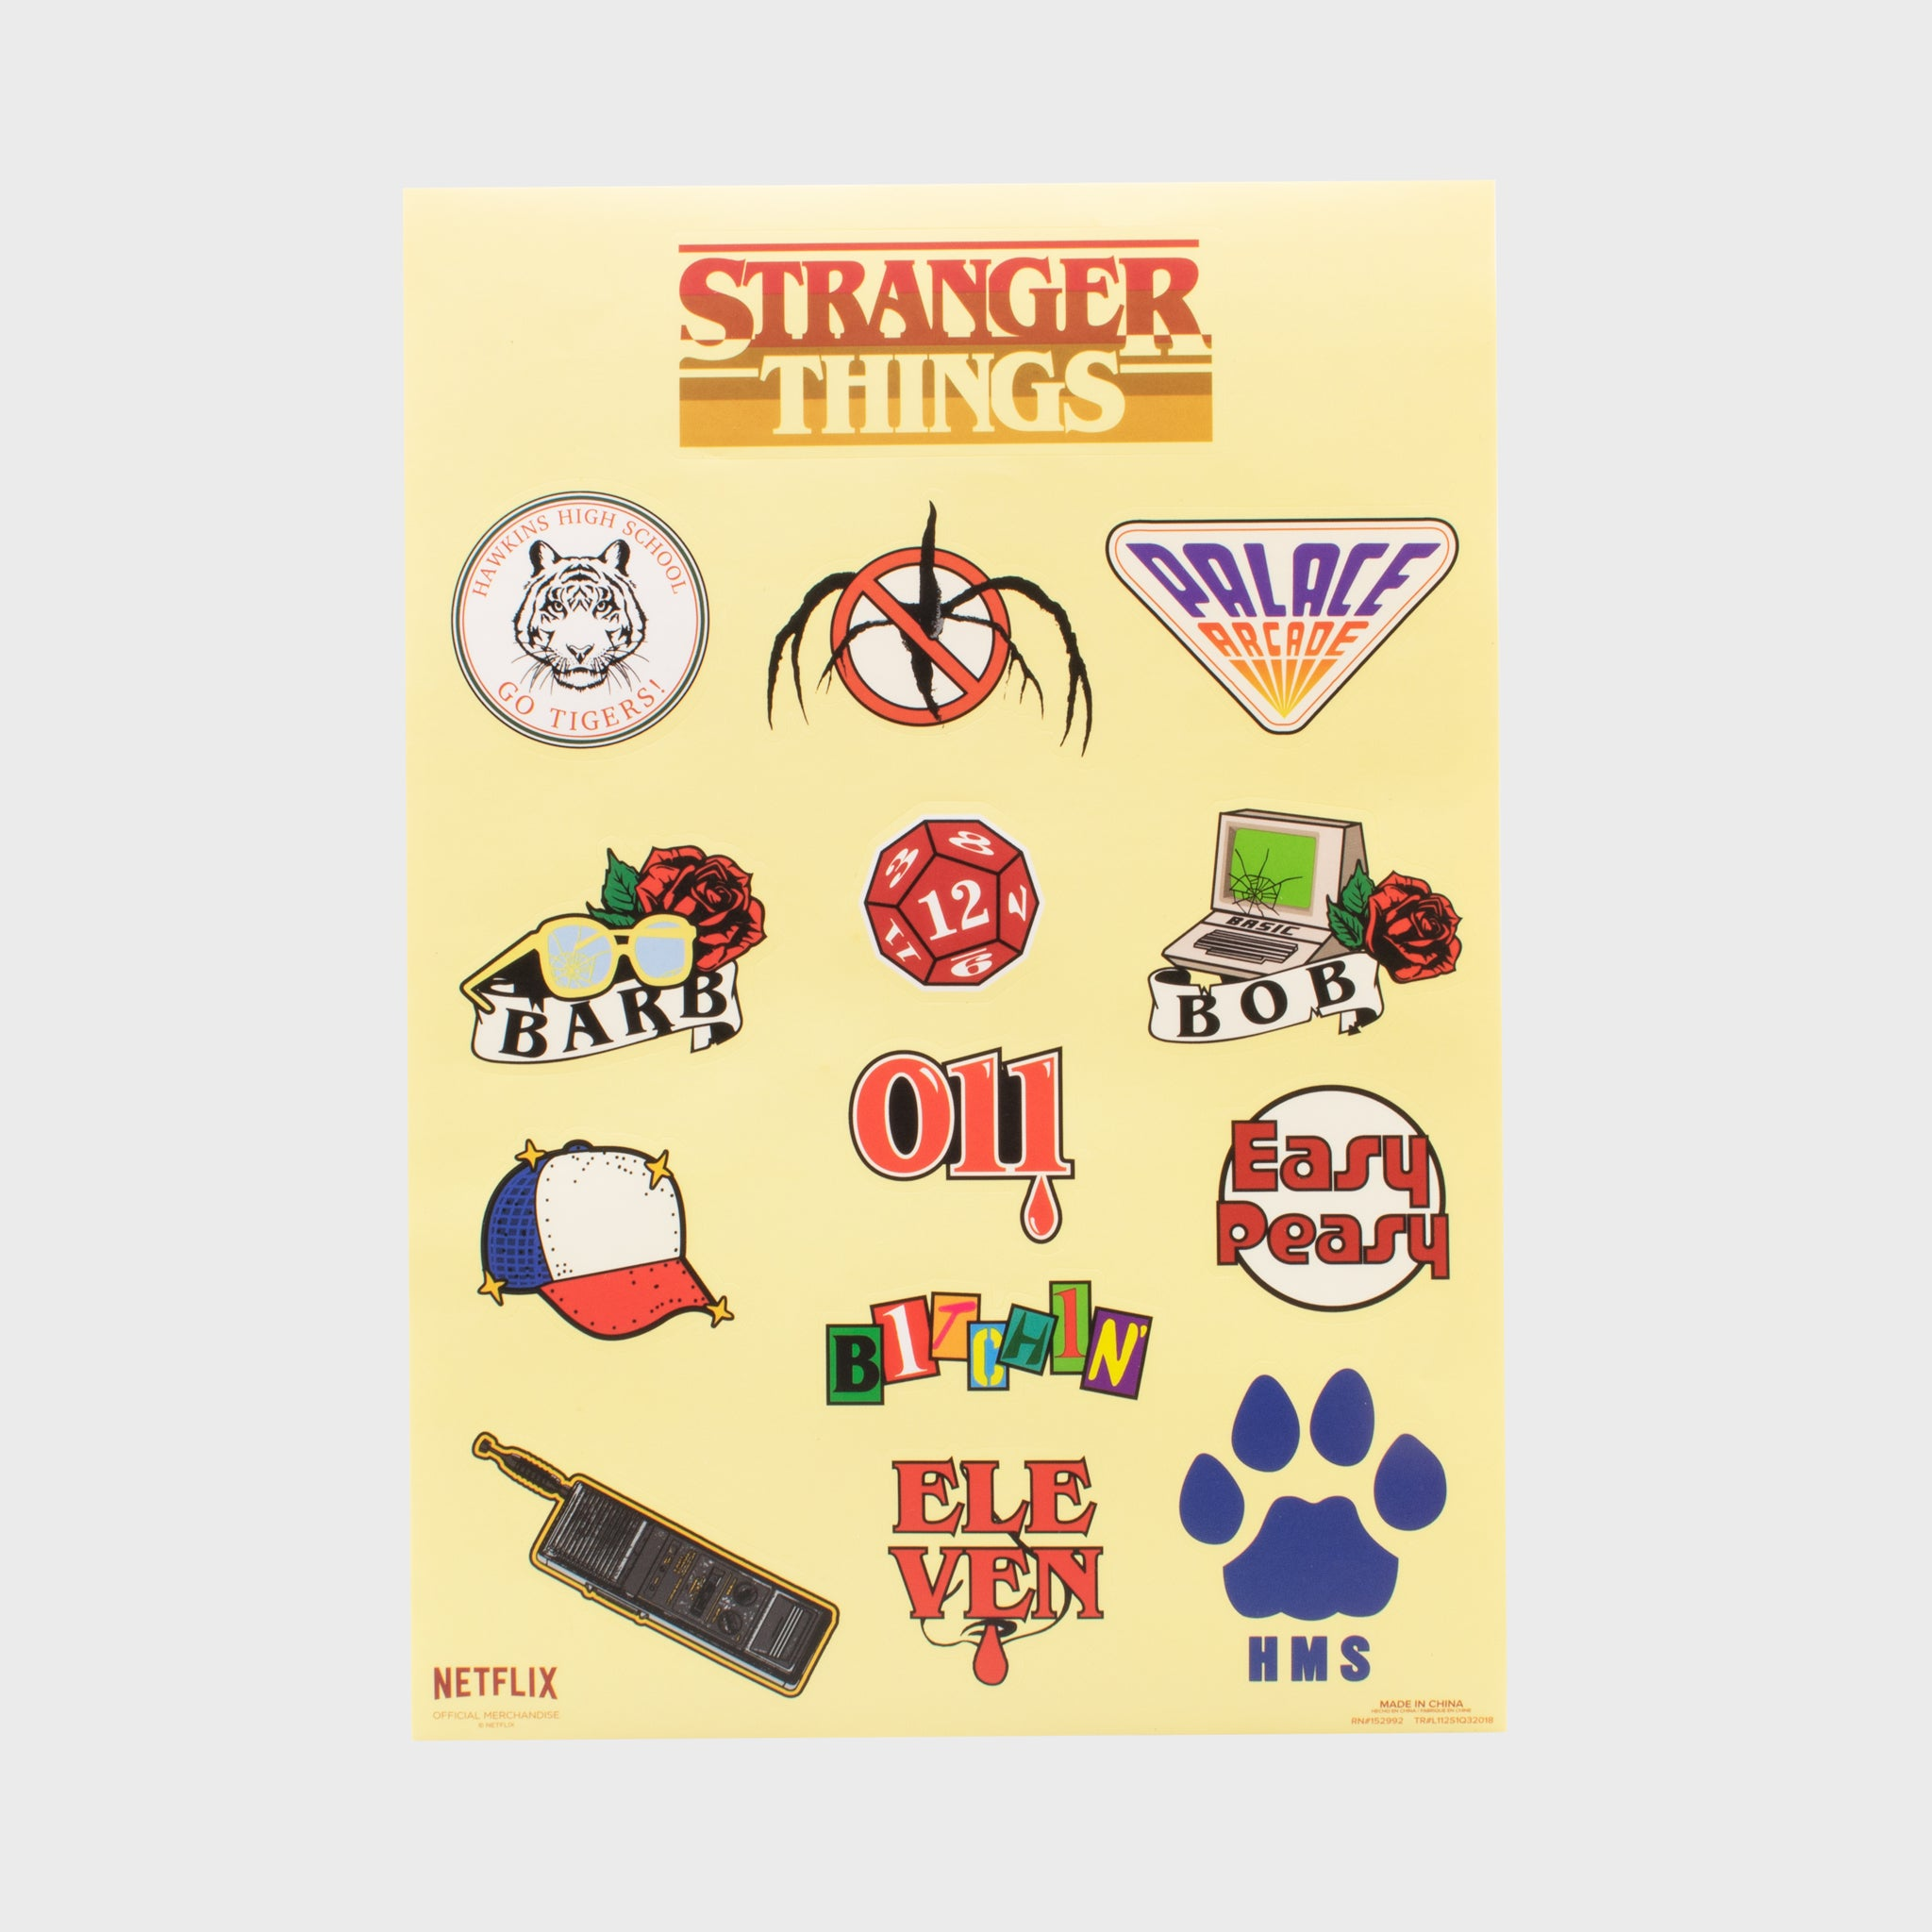 stranger things sticker sheet stickers eleven netflix collector's box collectible exclusive upside down waffles culturefly